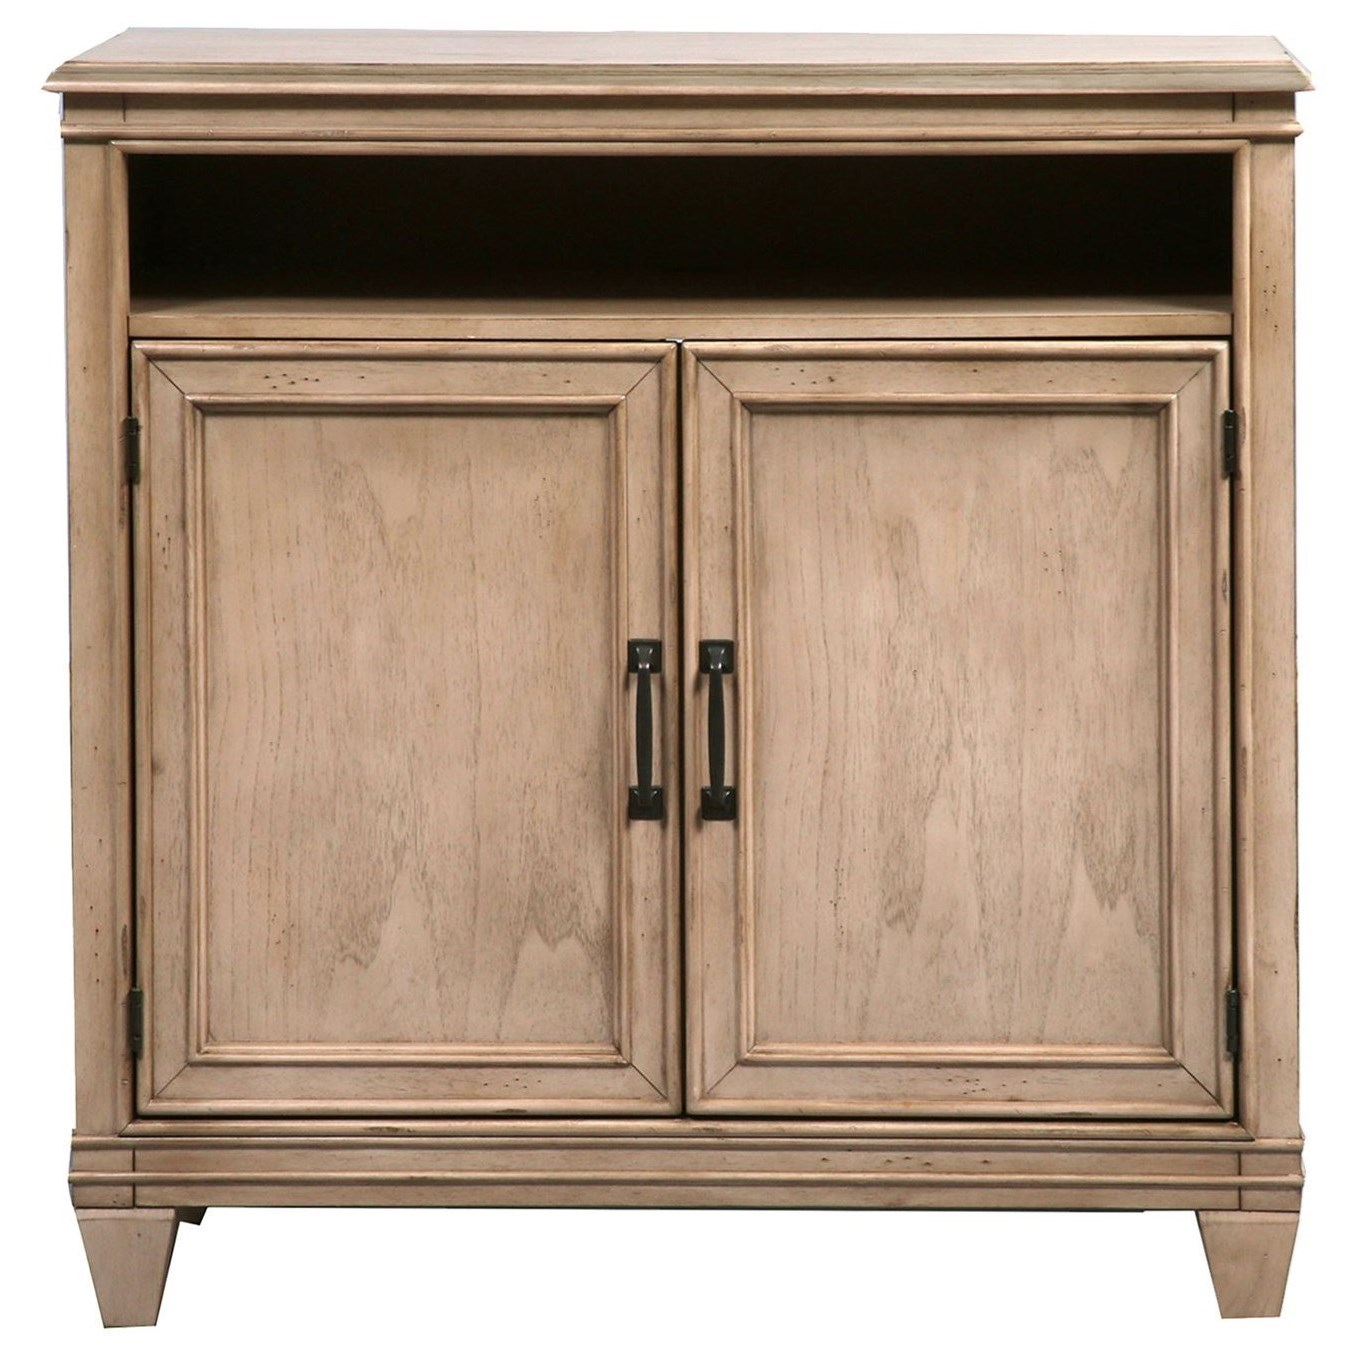 Liberty Furniture 573 Media Chest - Item Number: 573-BR45